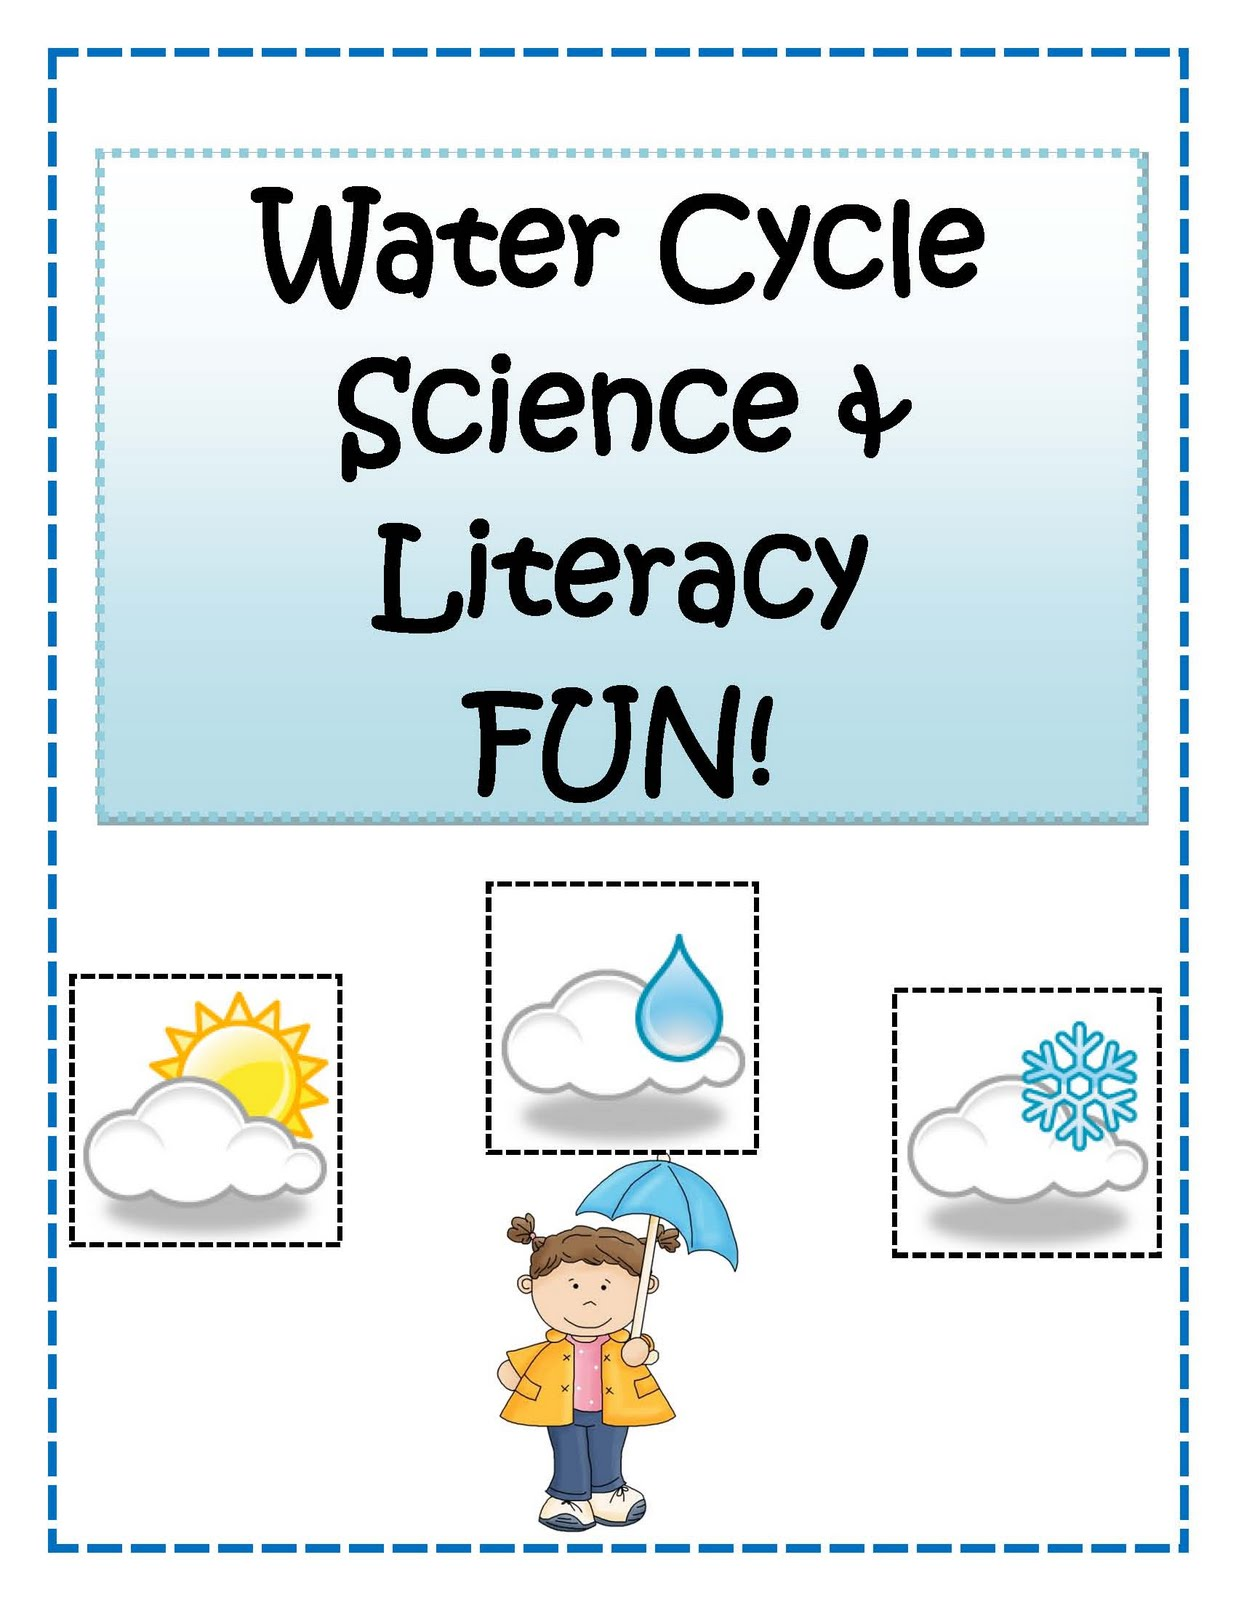 Little Miss Middle School Middle School Science Water Cycle